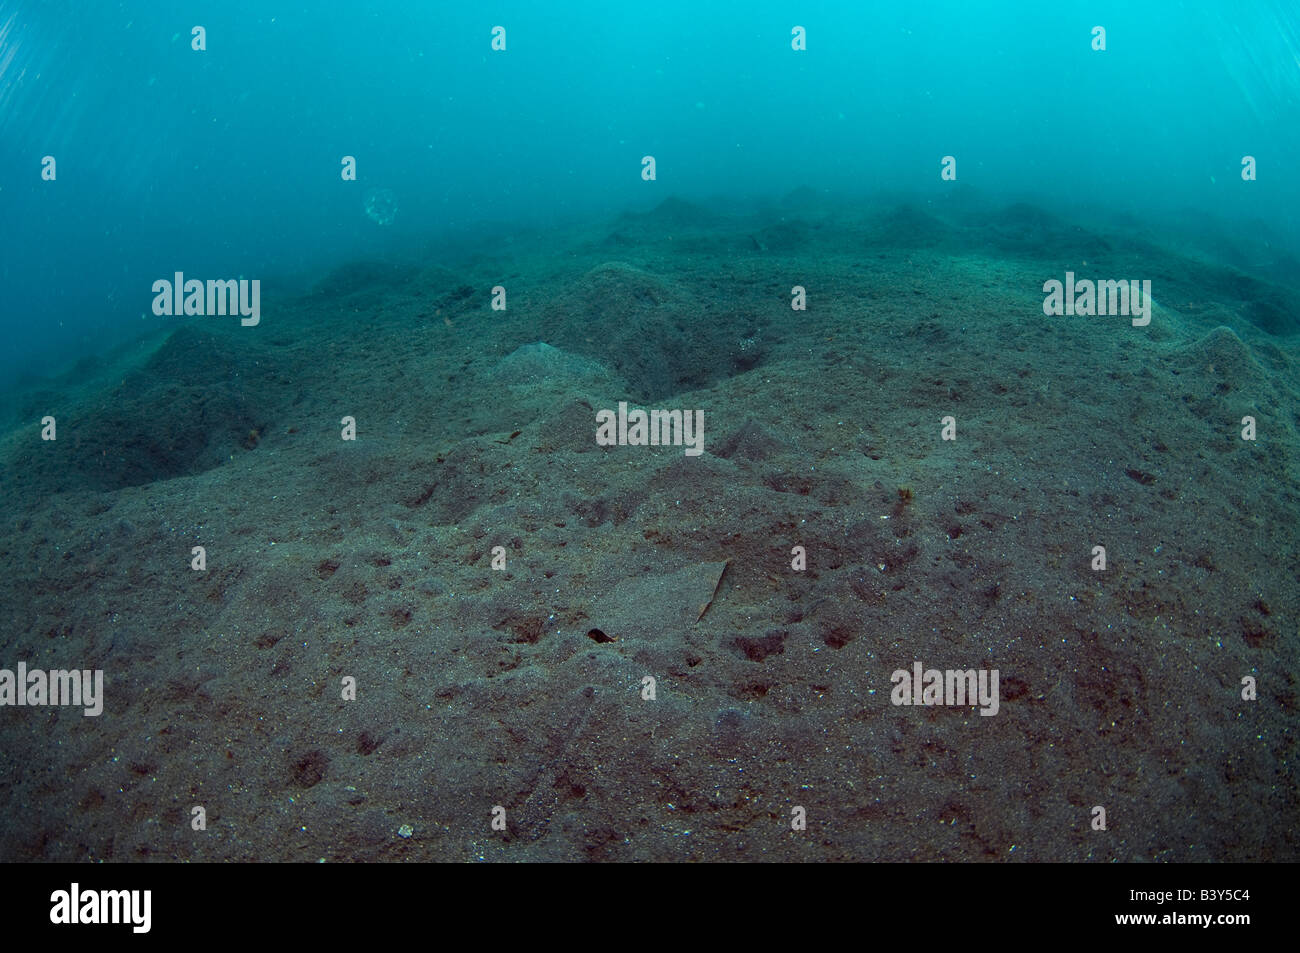 The underwater landscape in Lembeh Strait consists primarily of black volcanic sand - Stock Image